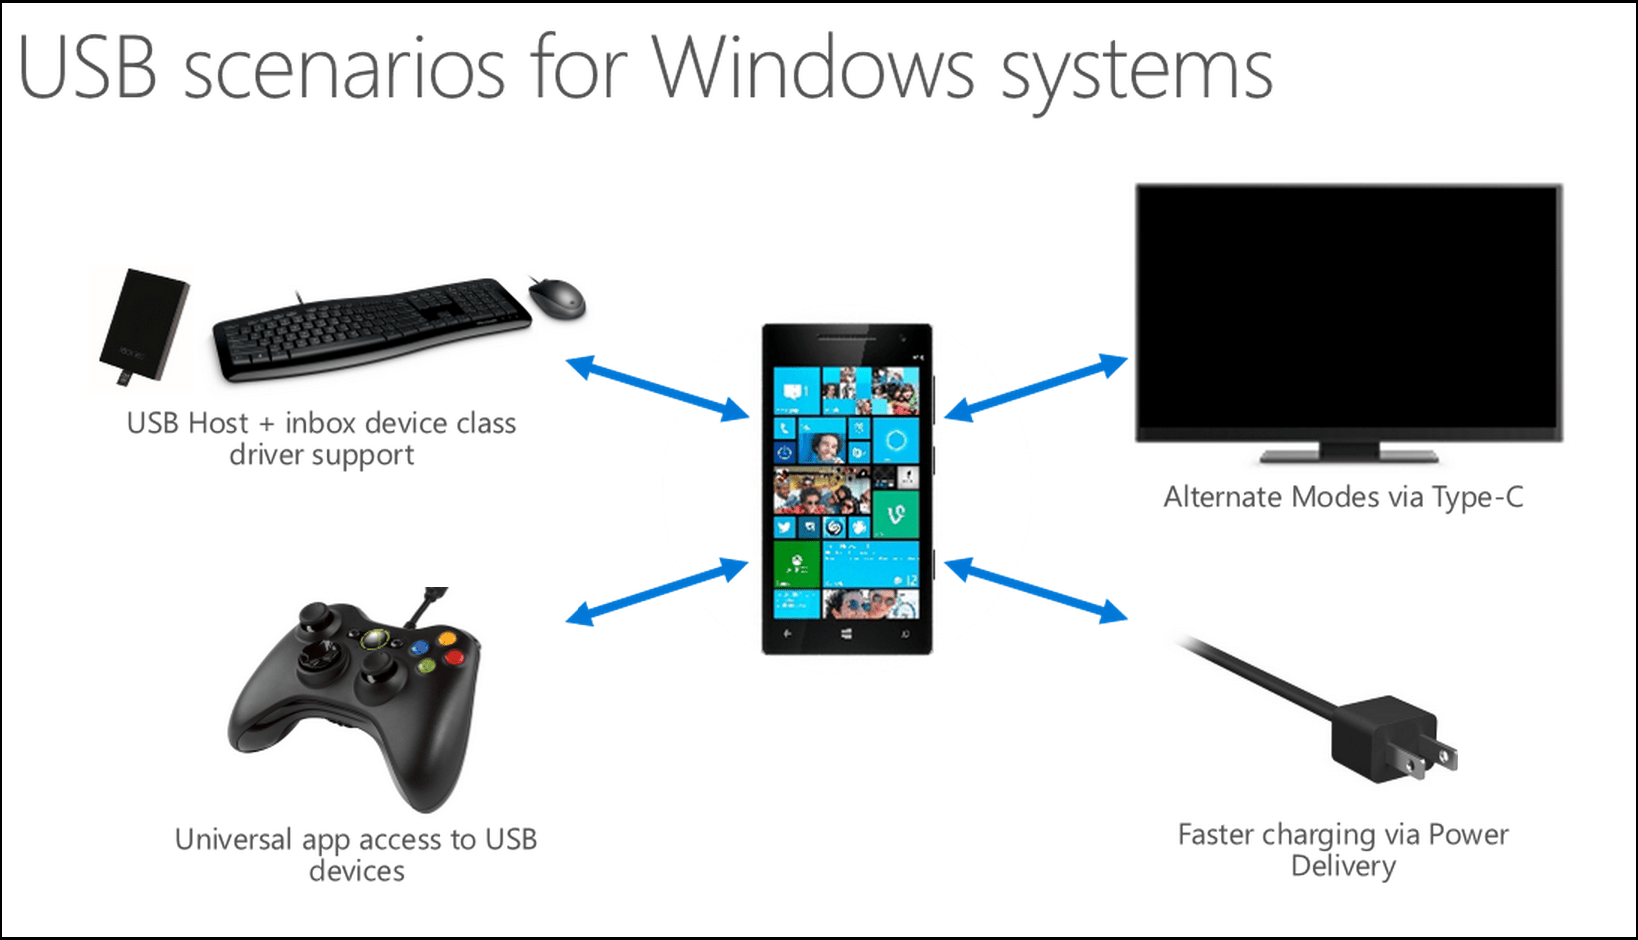 Windows 10 For Phone Supports USB Mass Storage